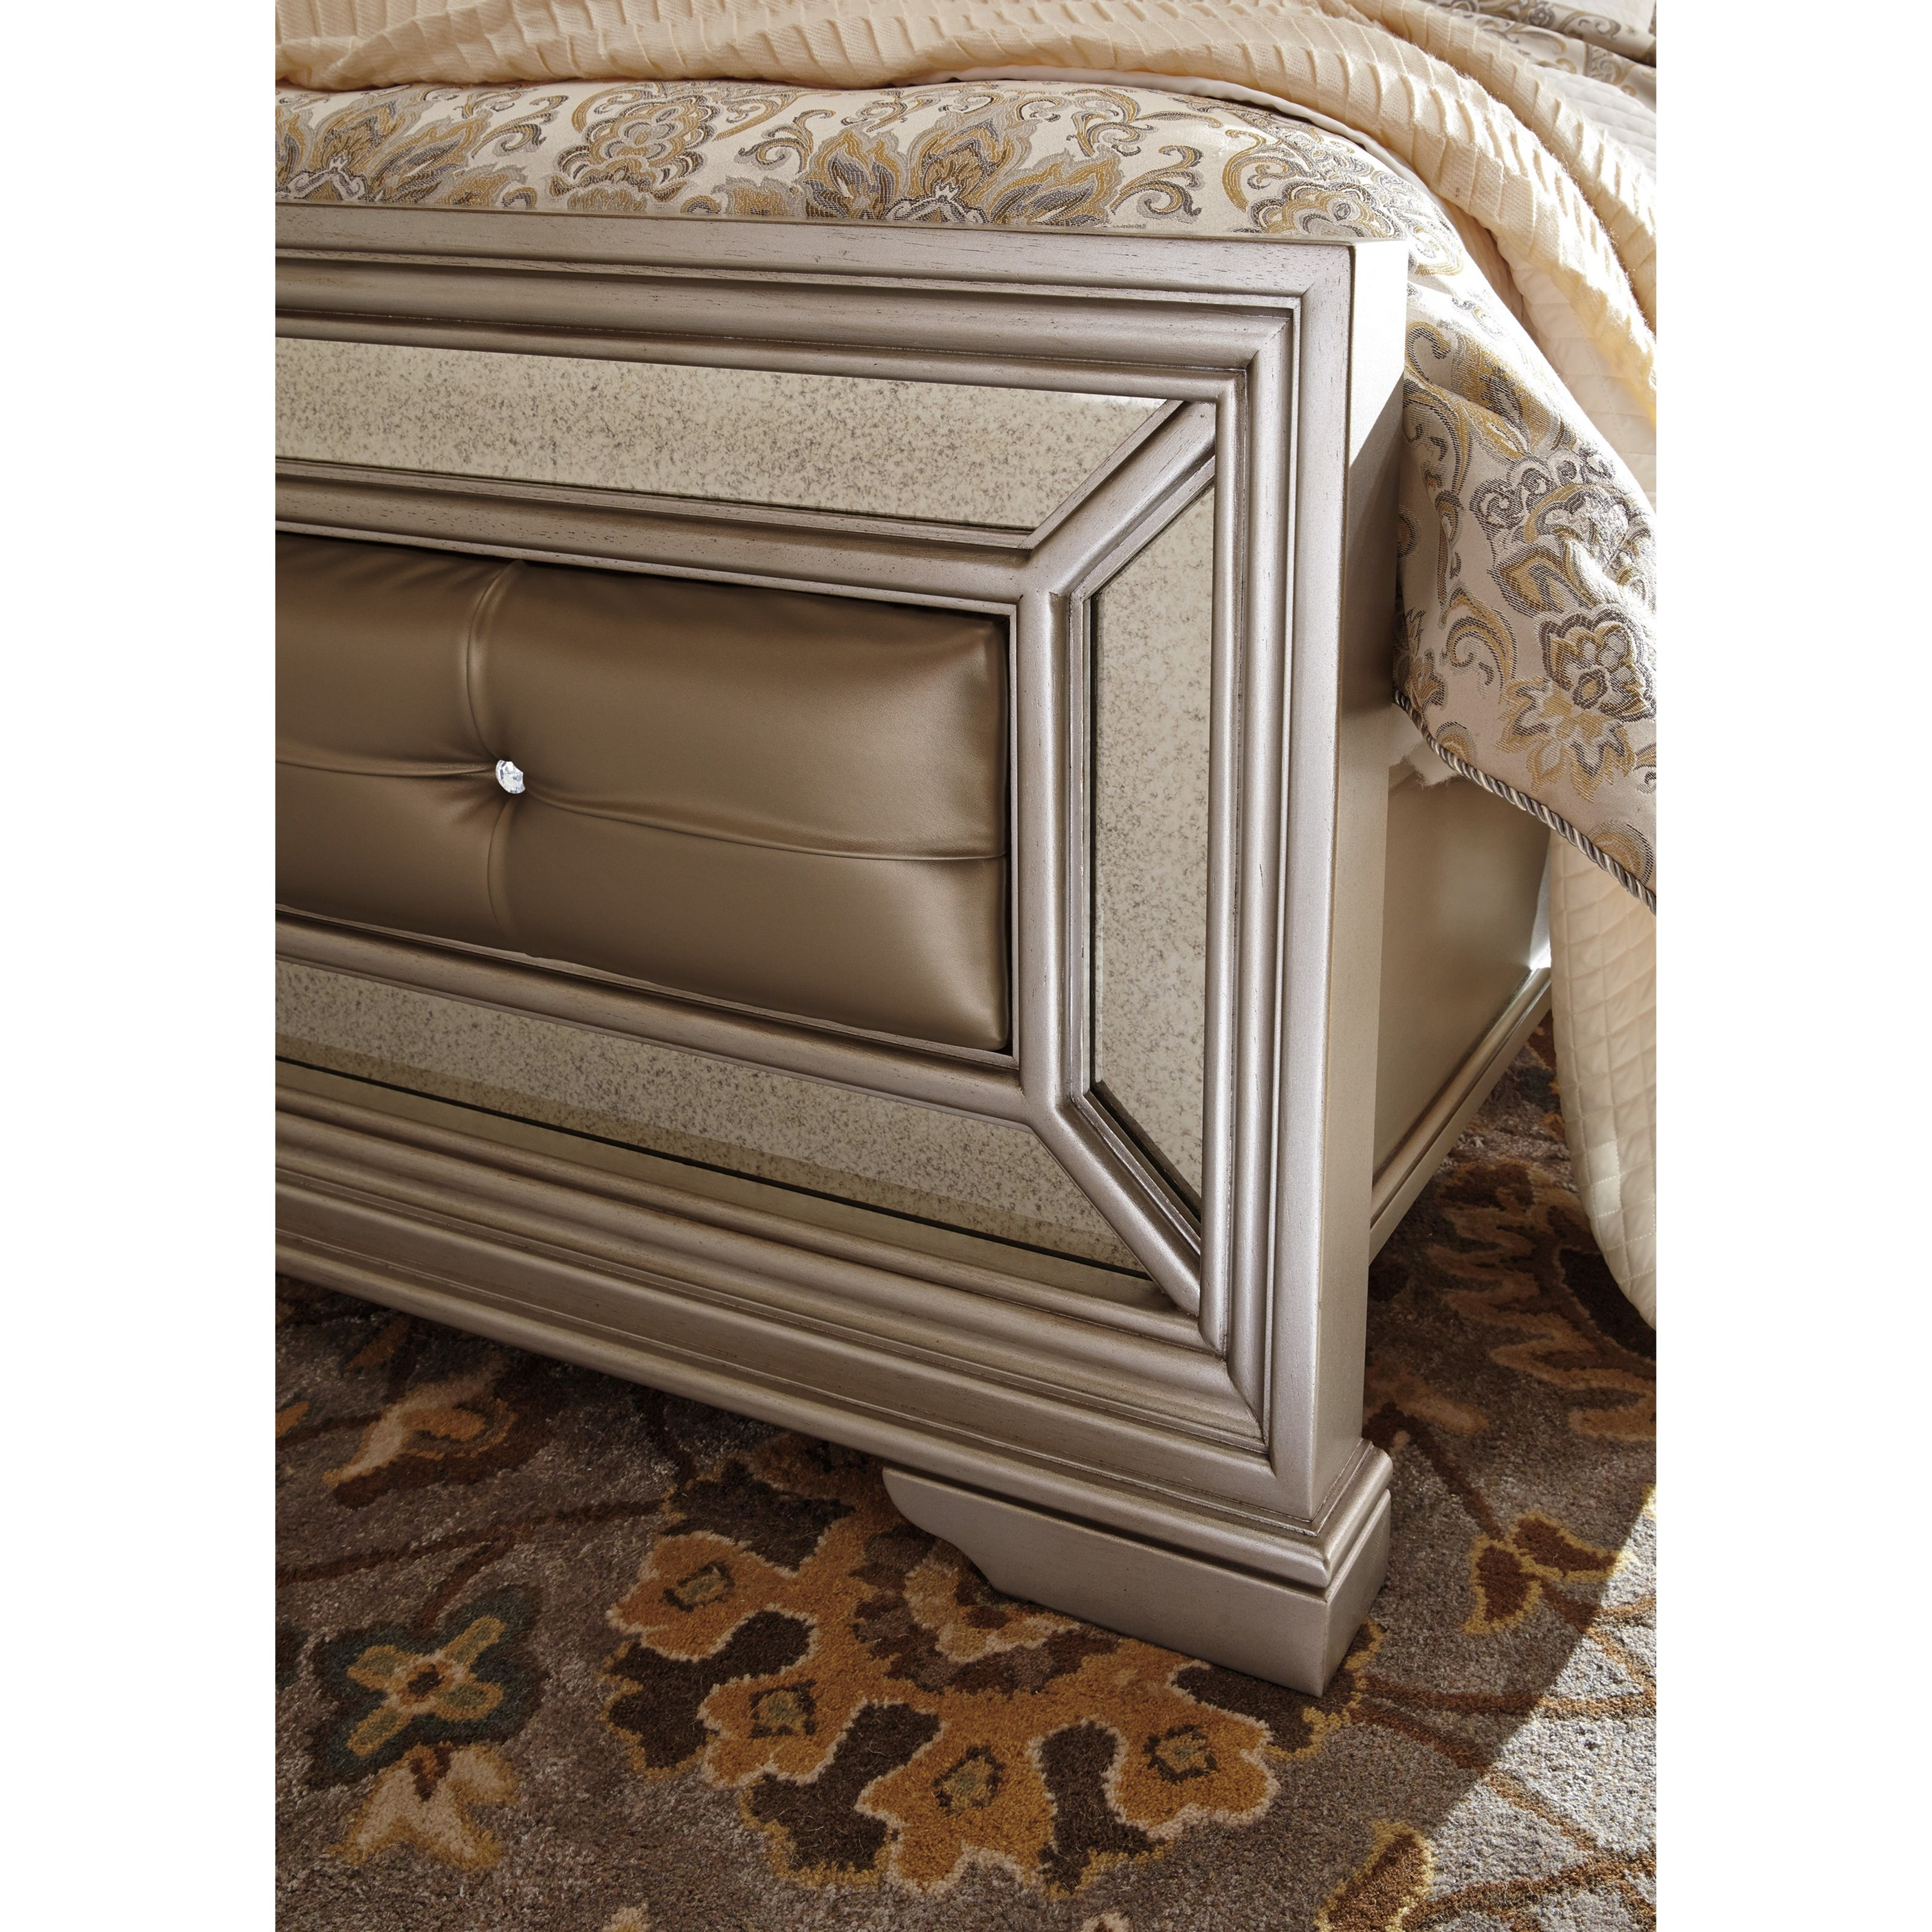 Signature Design By Ashley Birlanny Queen Upholstered Bed In Silver Finish Olinde 39 S Furniture